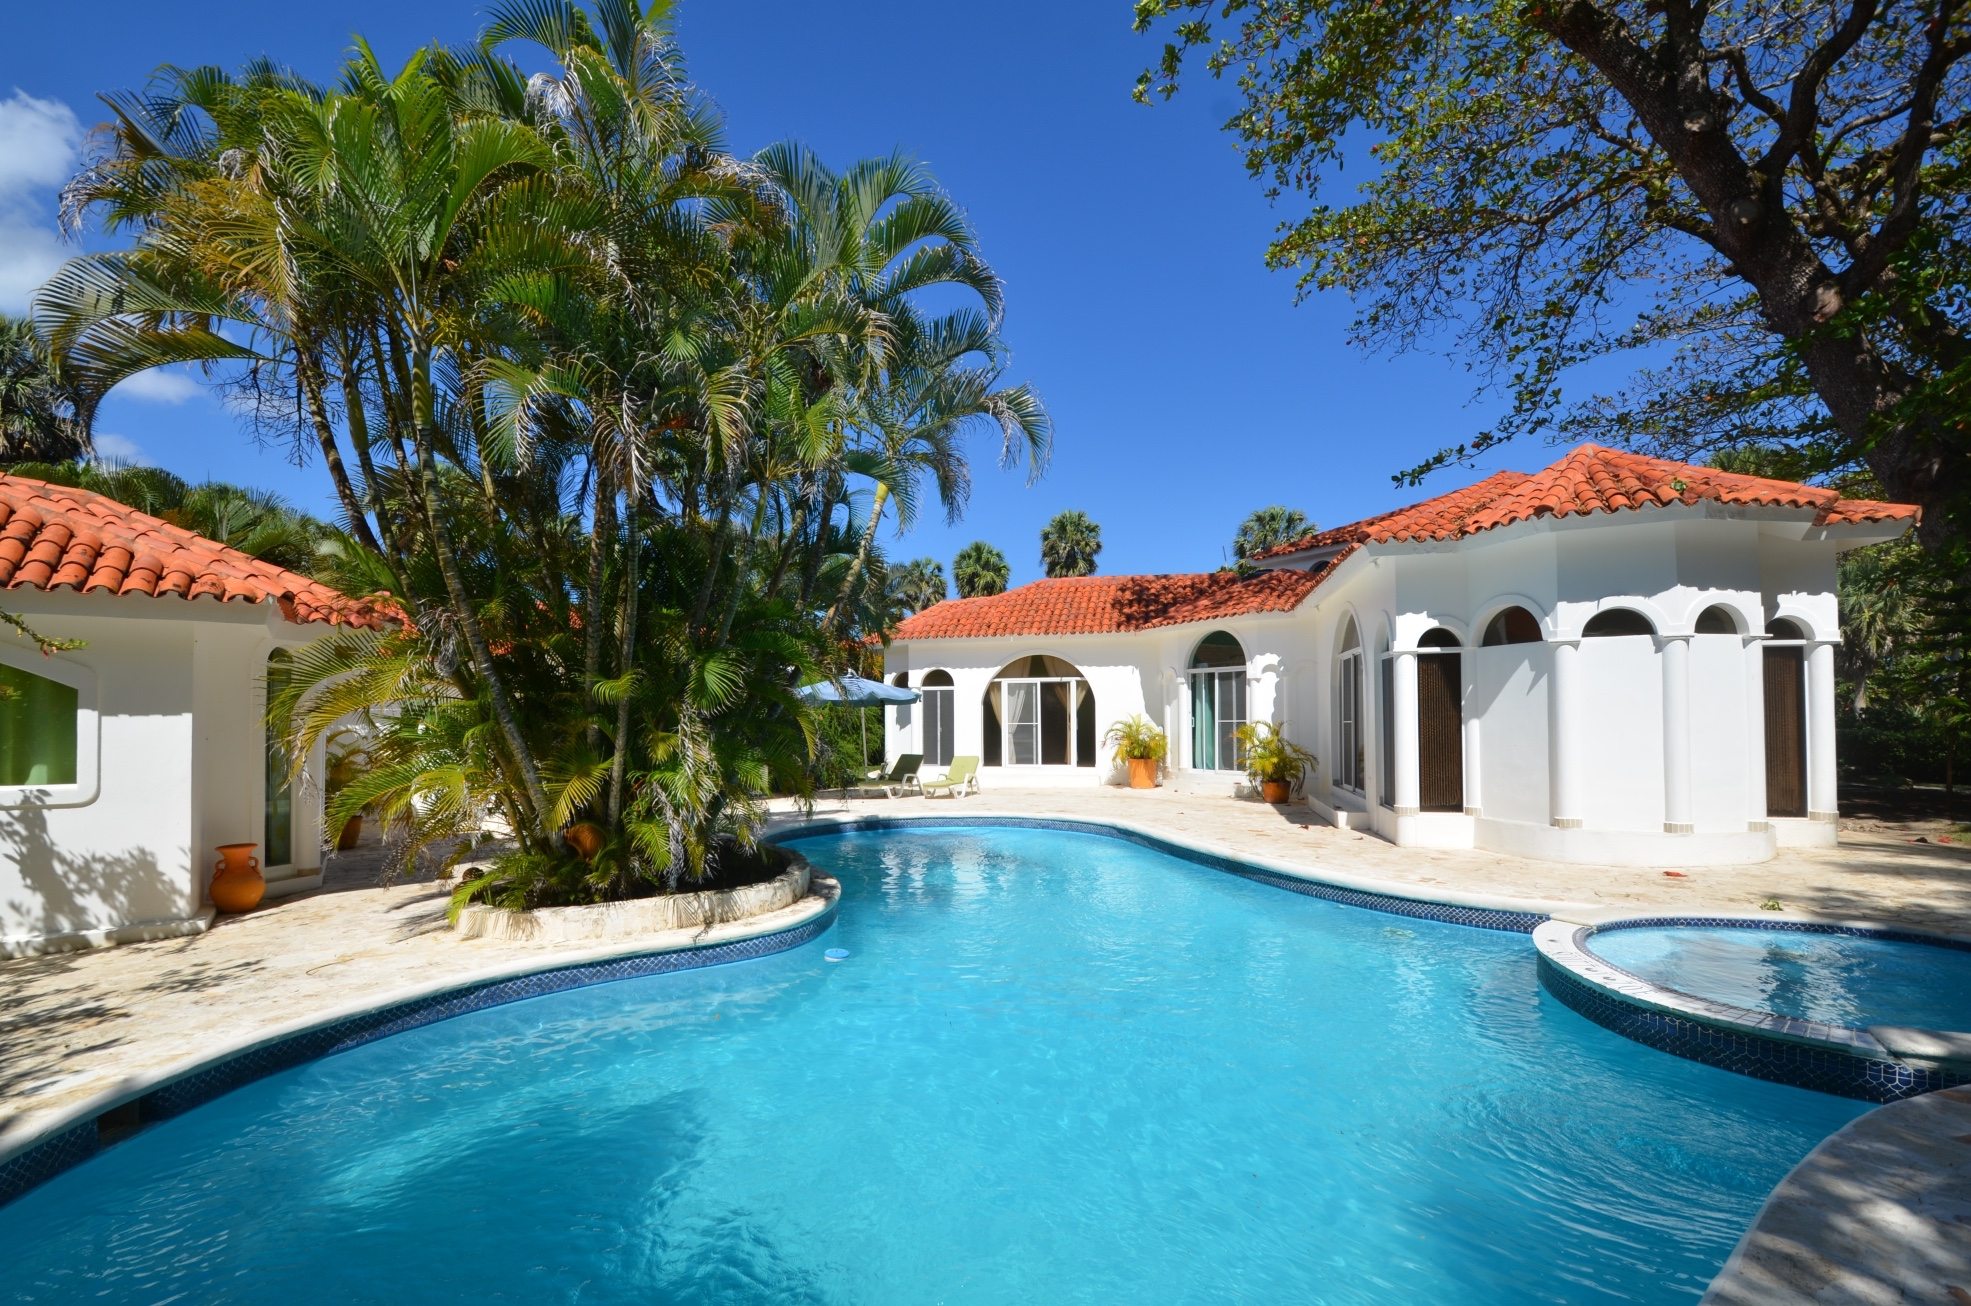 Beach Villa for Sale in Cabarete – Good ROI